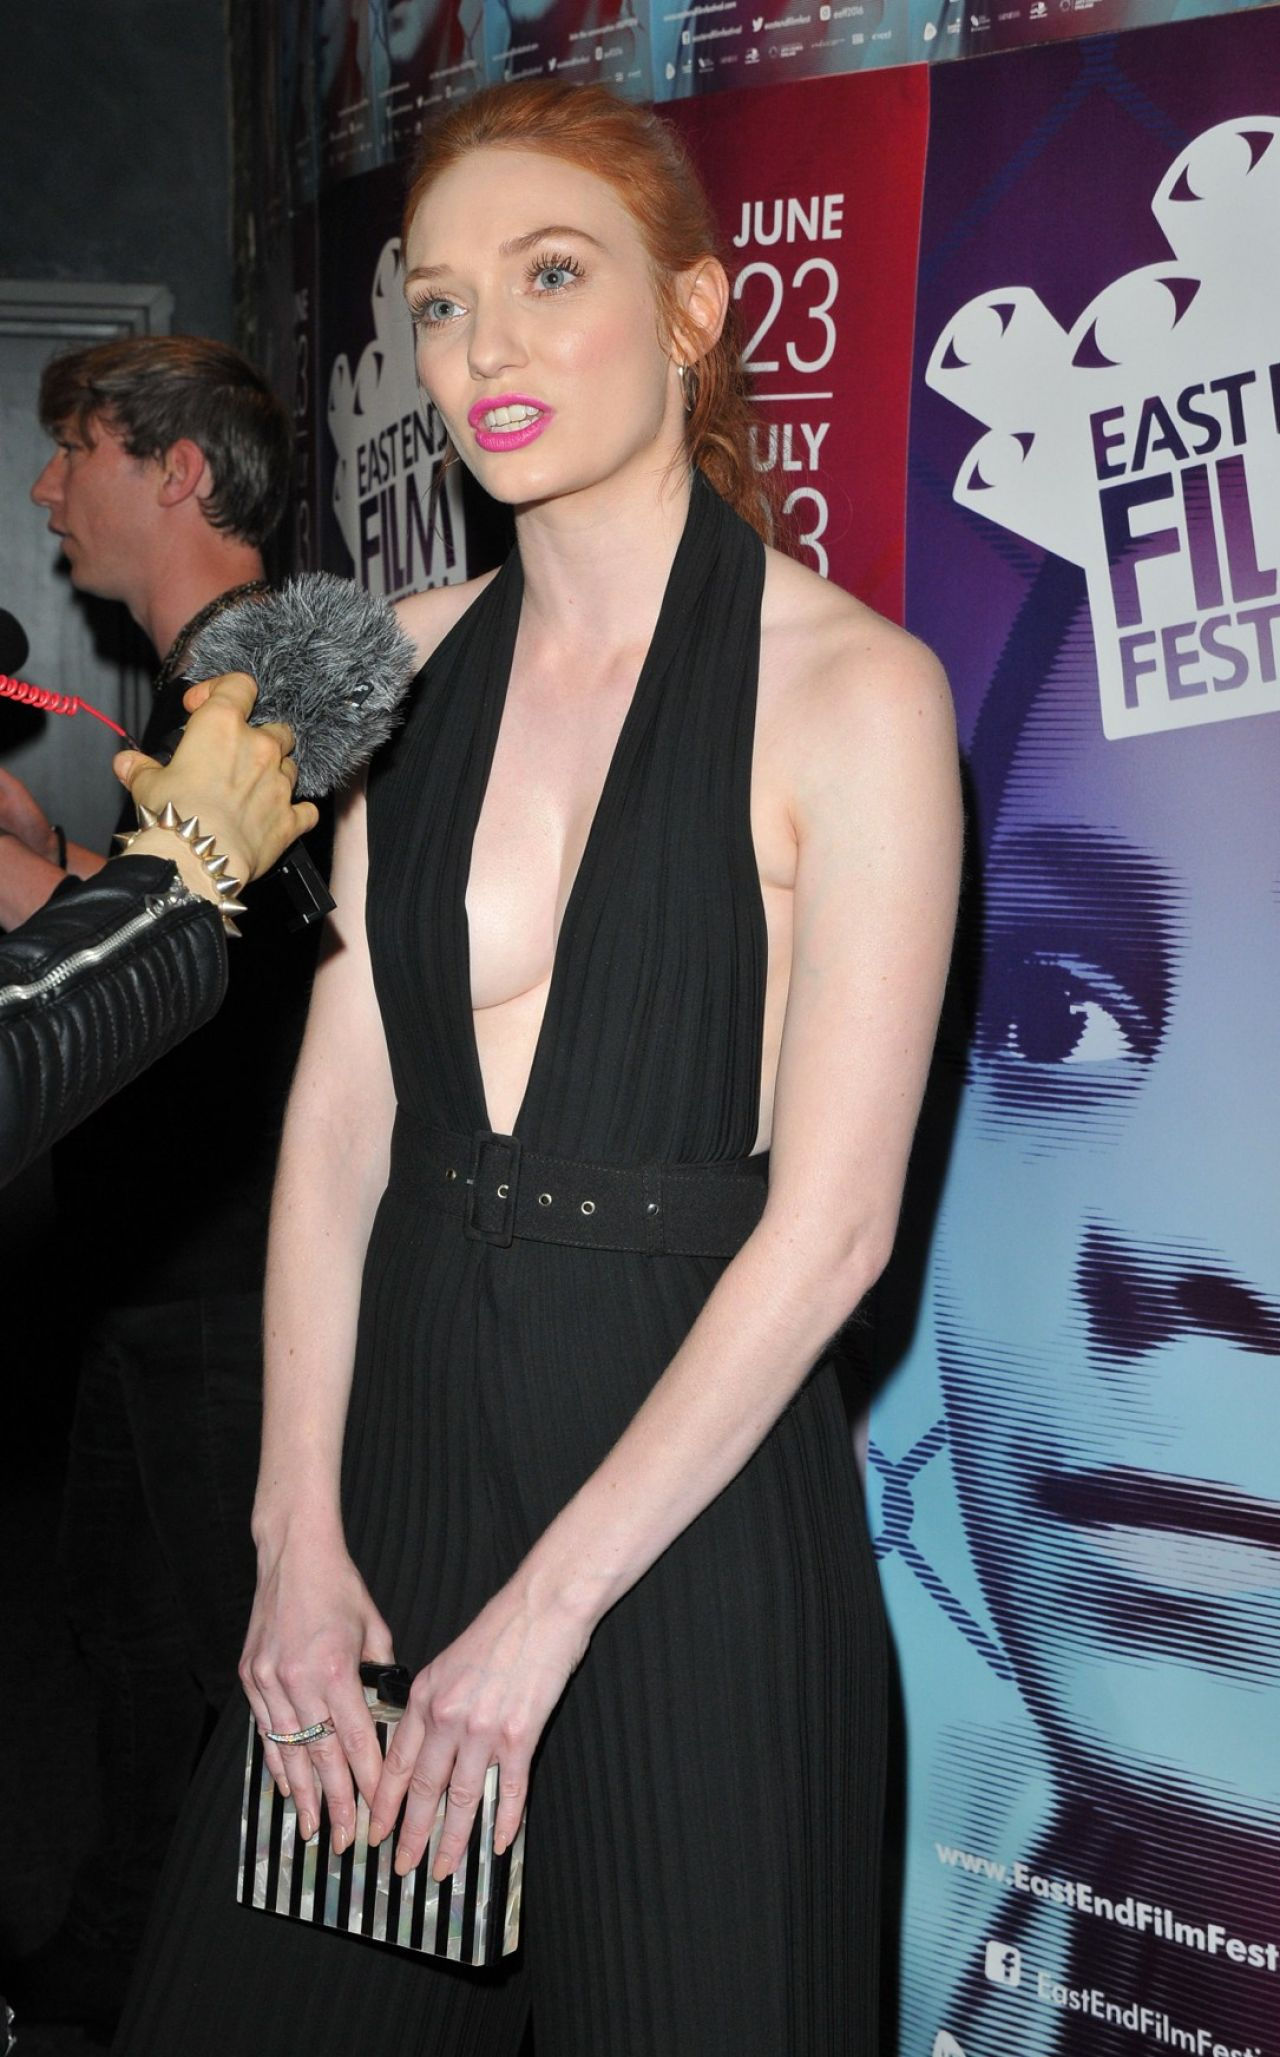 Eleanor Tomlinson Alleycats Movie Premiere At East End Film Festival Opening Gala In London